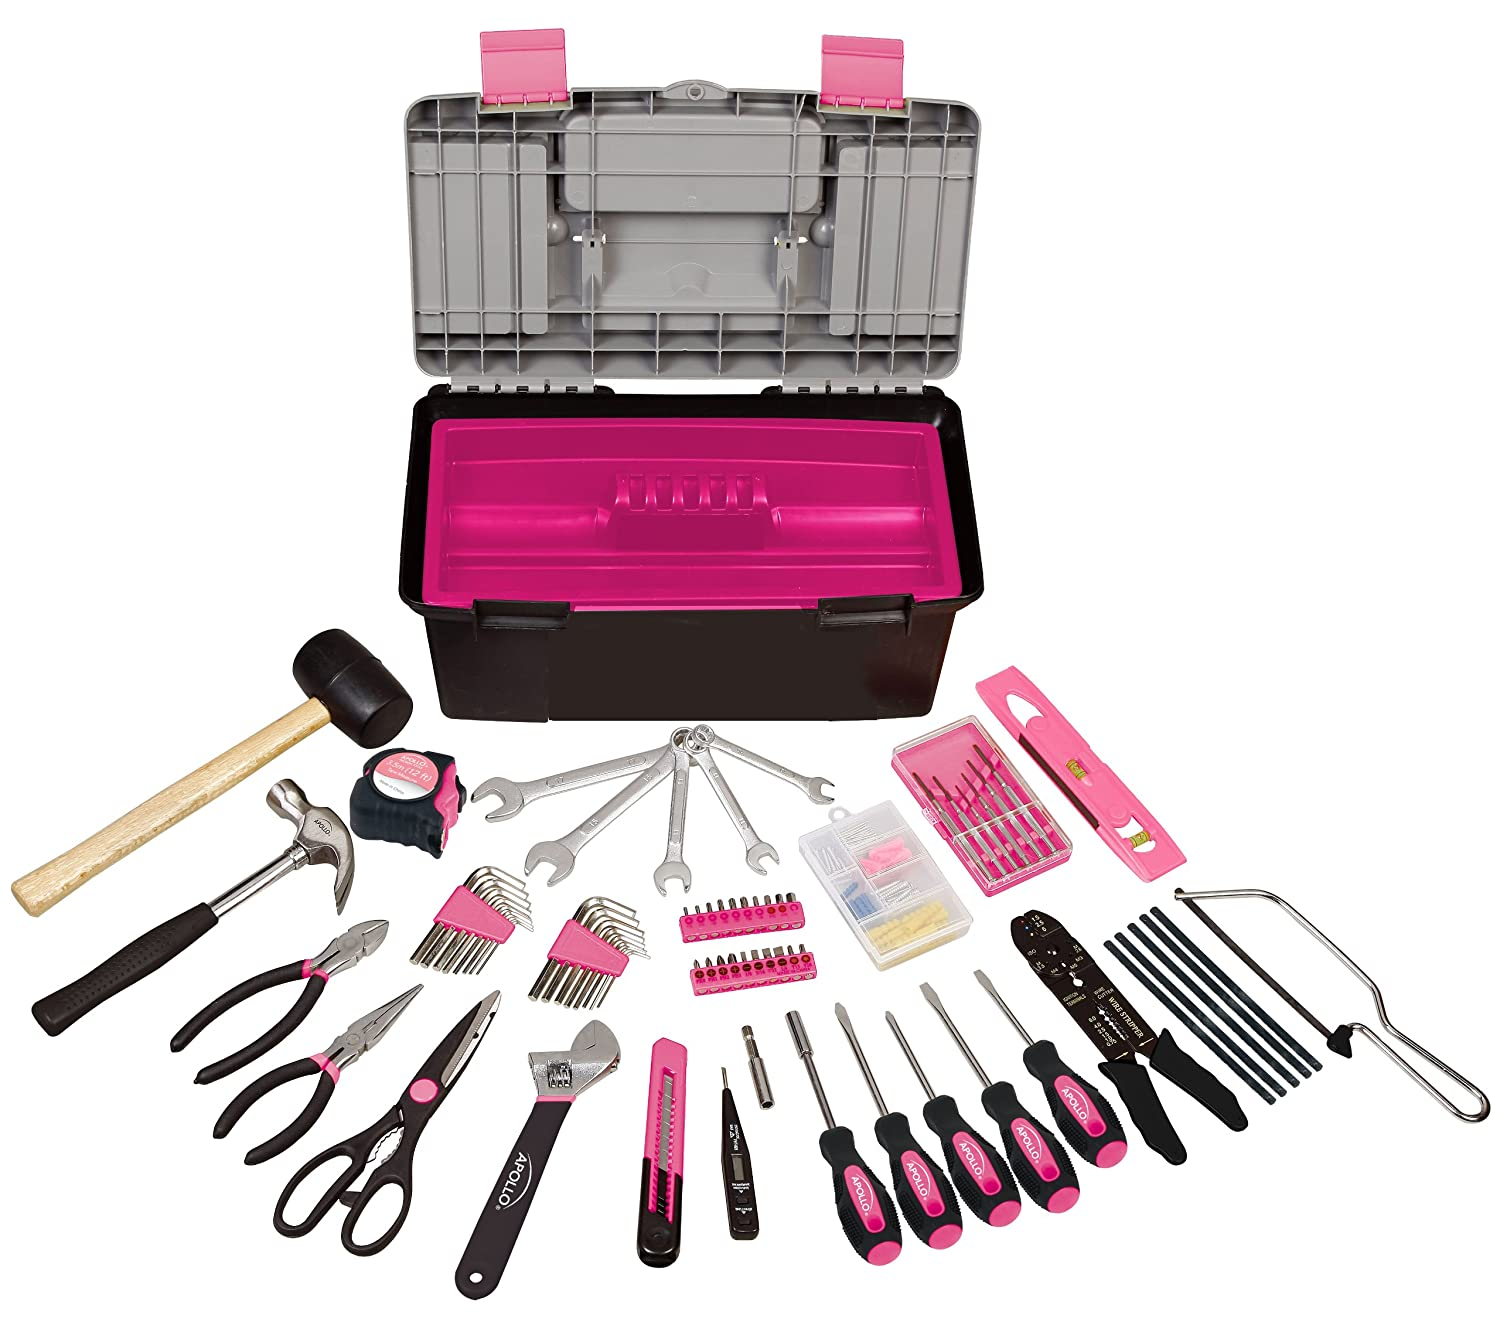 Apollo Tools DT7102P Household Tool Kit with Tool Box, Pink, 170 Piece at Sears.com